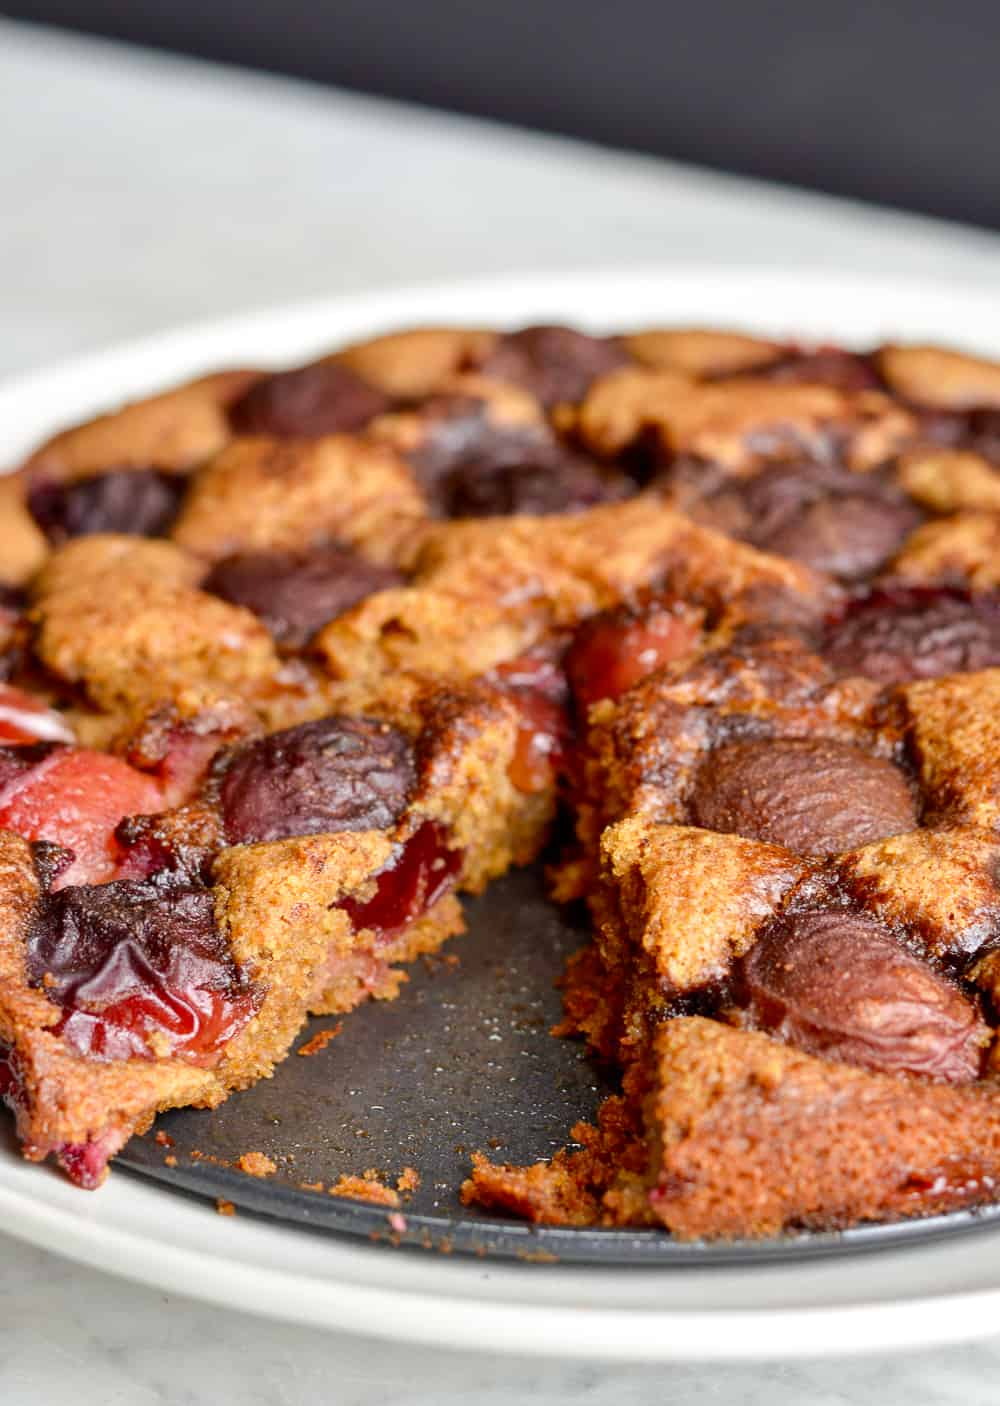 plum torte with piece cut